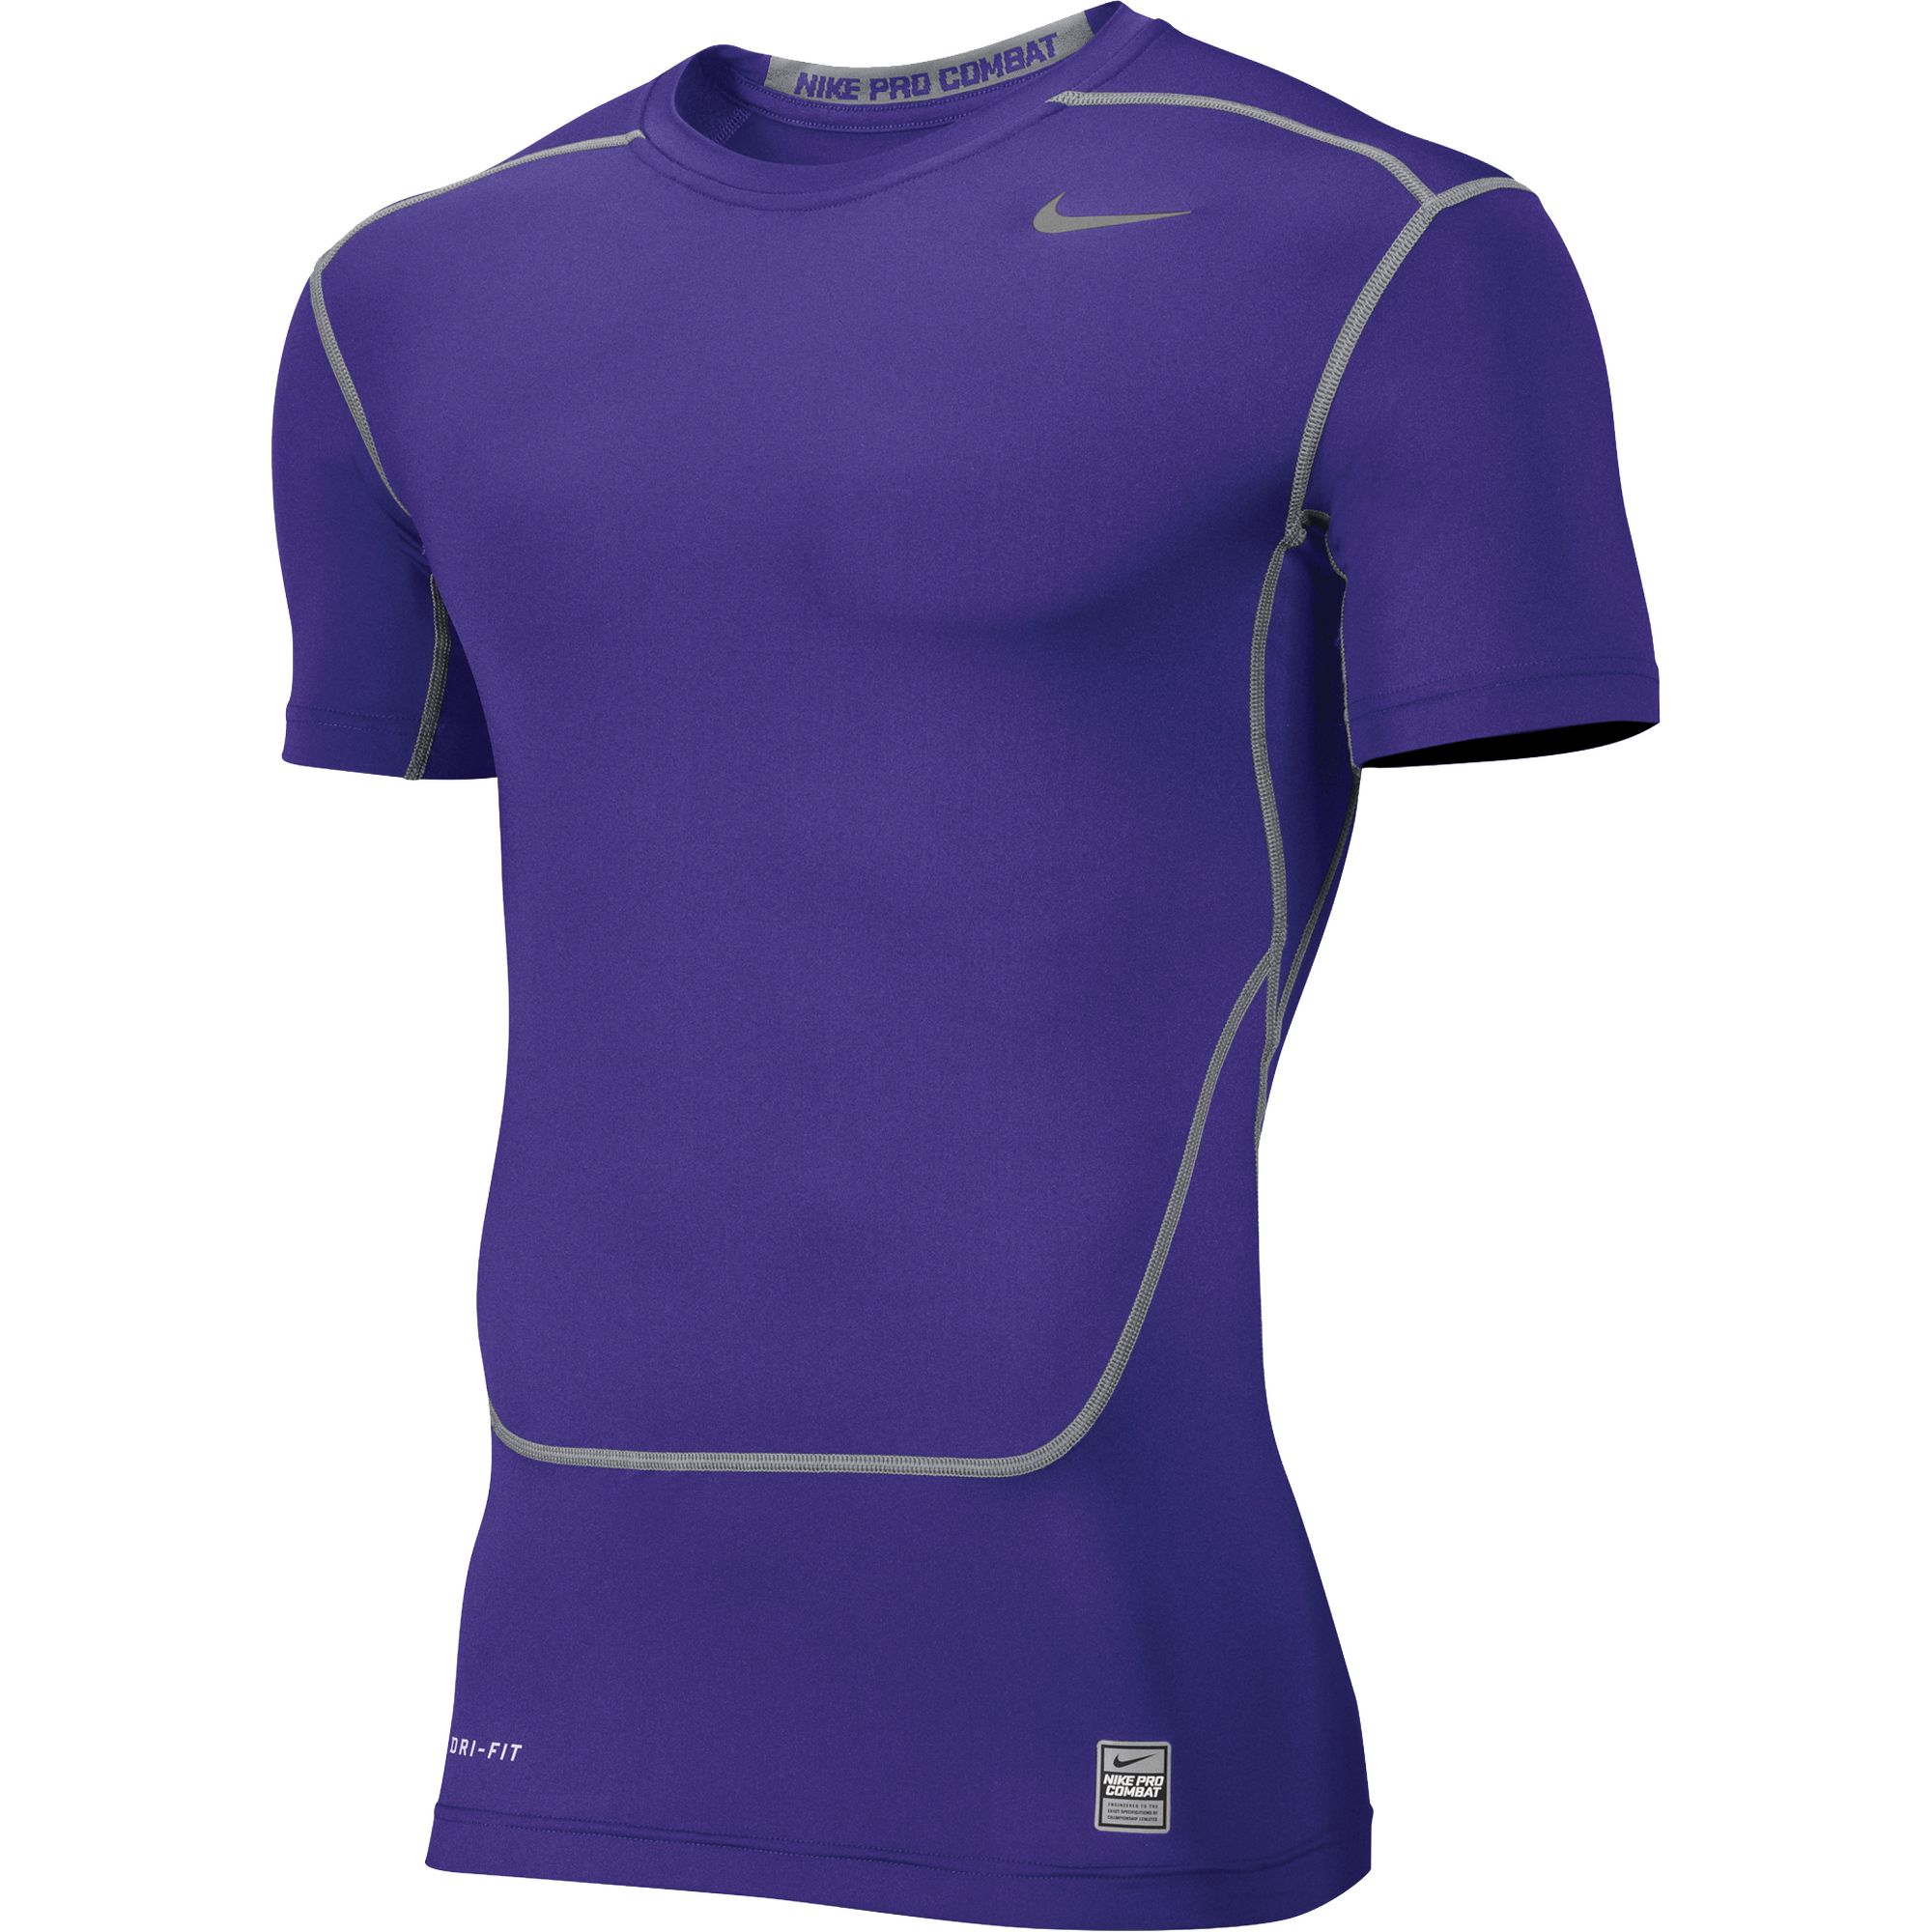 nike pro combat shirt images galleries with a bite. Black Bedroom Furniture Sets. Home Design Ideas